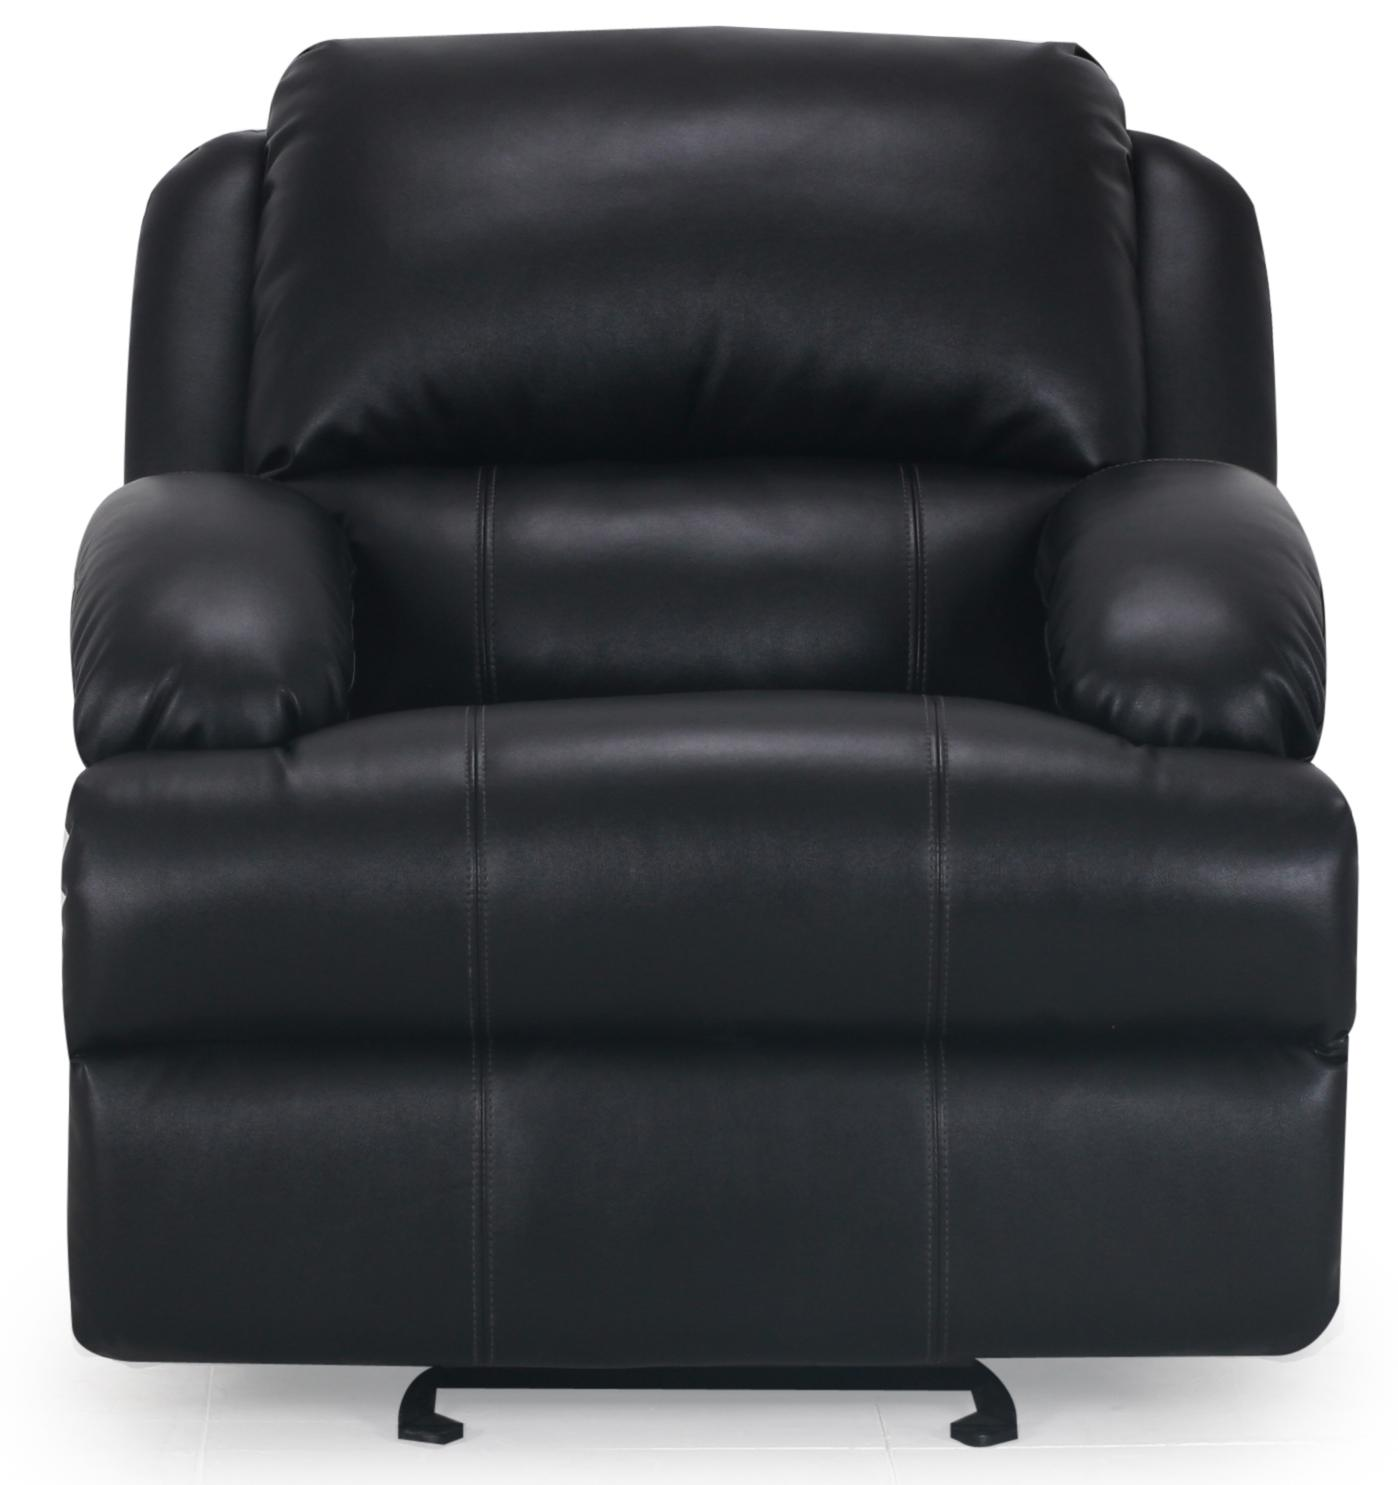 UXW8626M Glider Recliner by Cheers at Lagniappe Home Store